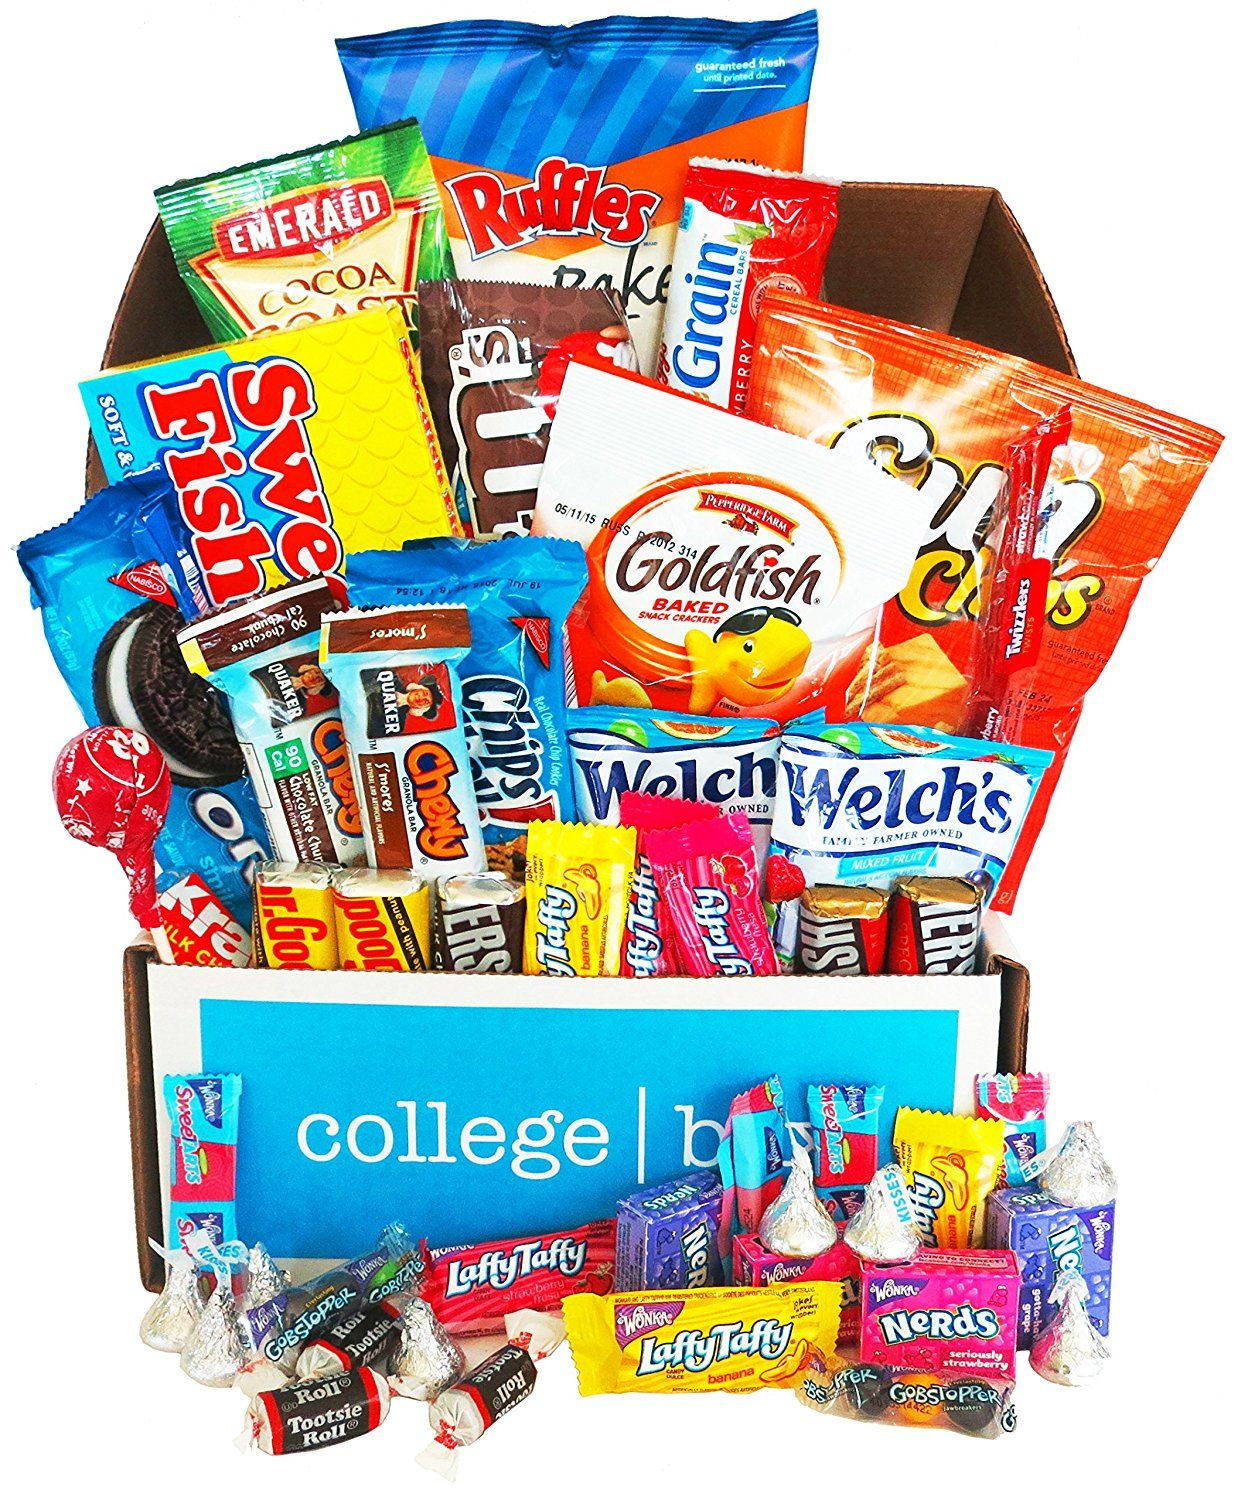 Classic snacks care package snack gift college assortment classic snacks care package 30 count chips cookies candy assortment bundle gift pack and variety box collegebox easter gift learn more by visiting the negle Choice Image